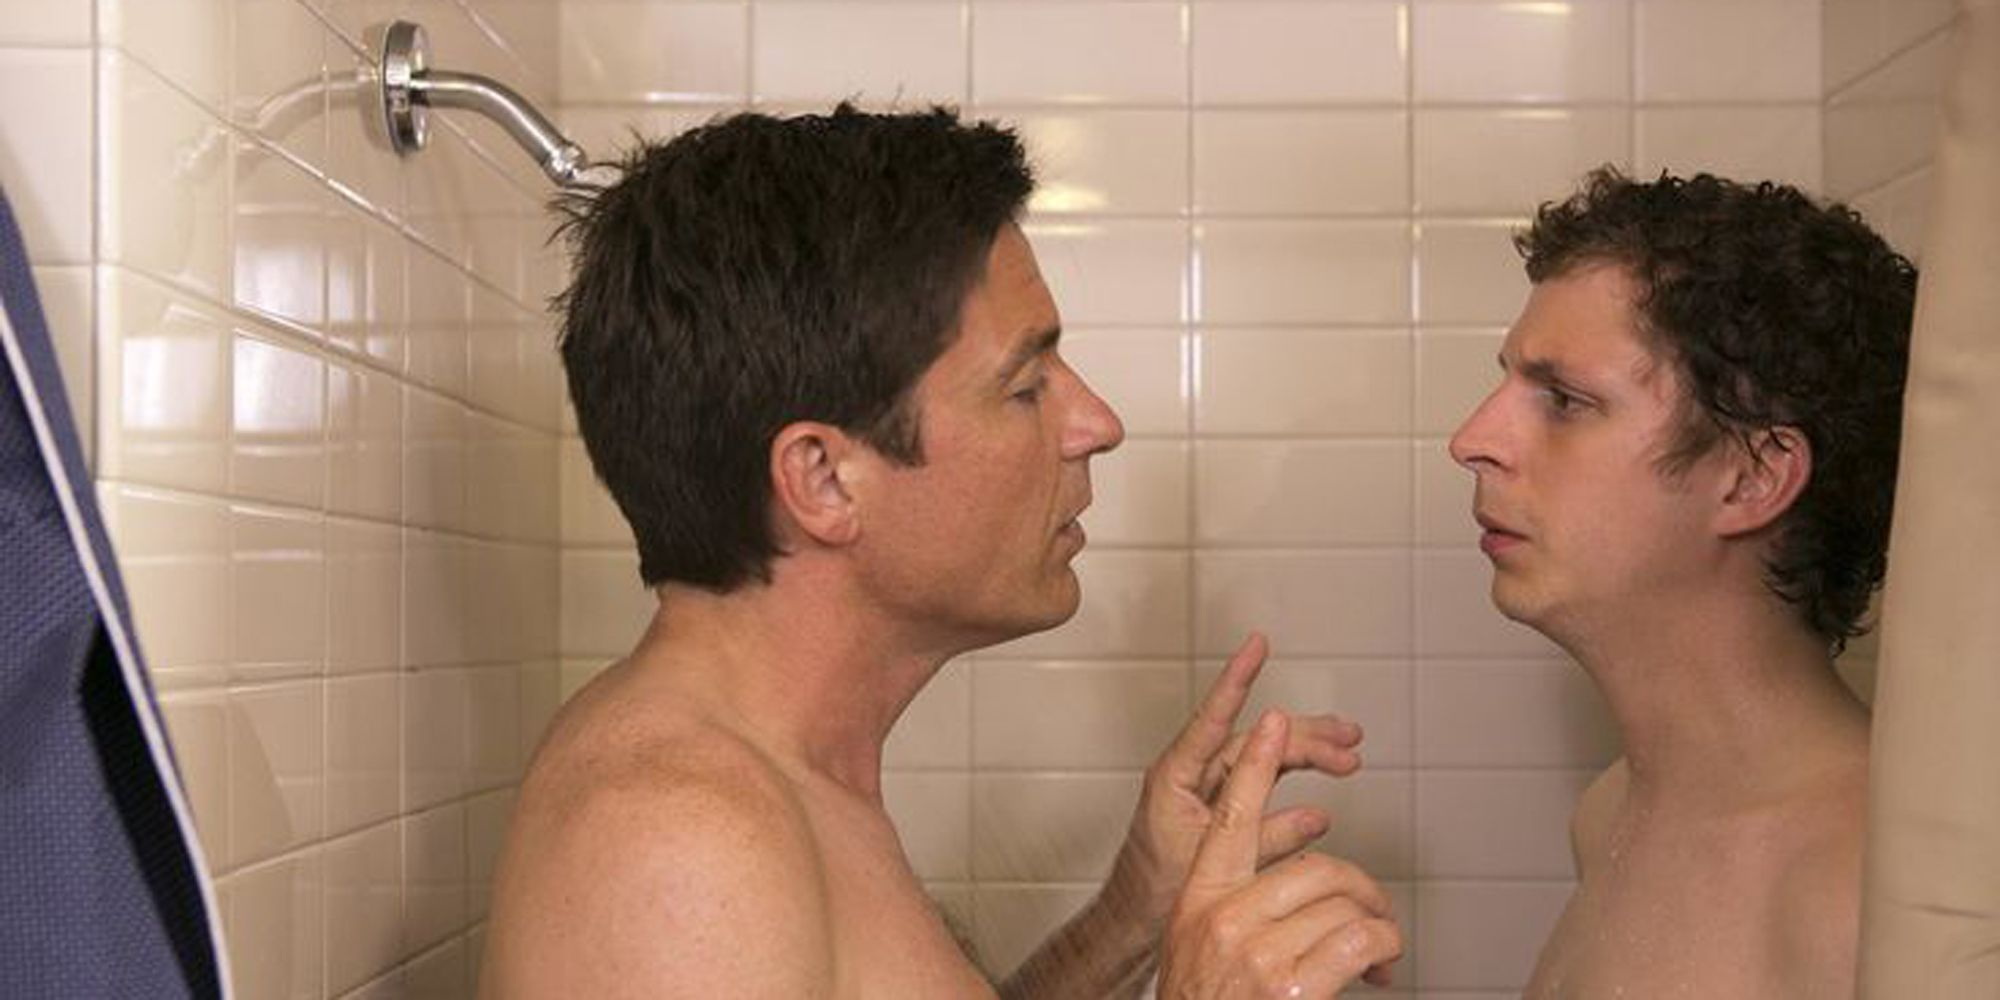 Why You Have Revelations in the Shower